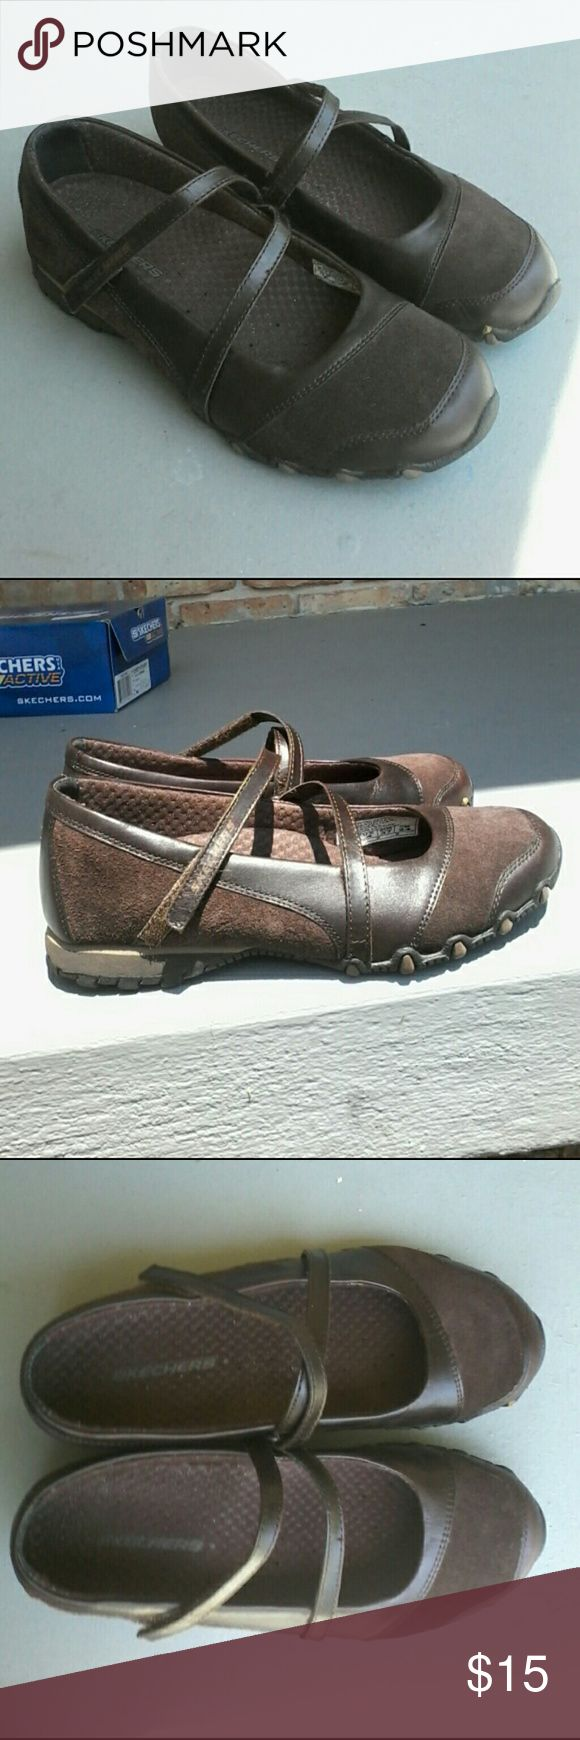 Skechers bikers Step Up shoe Can ultra clean pair of Skechers Biker Step Up toffee color leather shoe.  Extremely comfortable and practical. Skechers Shoes Flats & Loafers